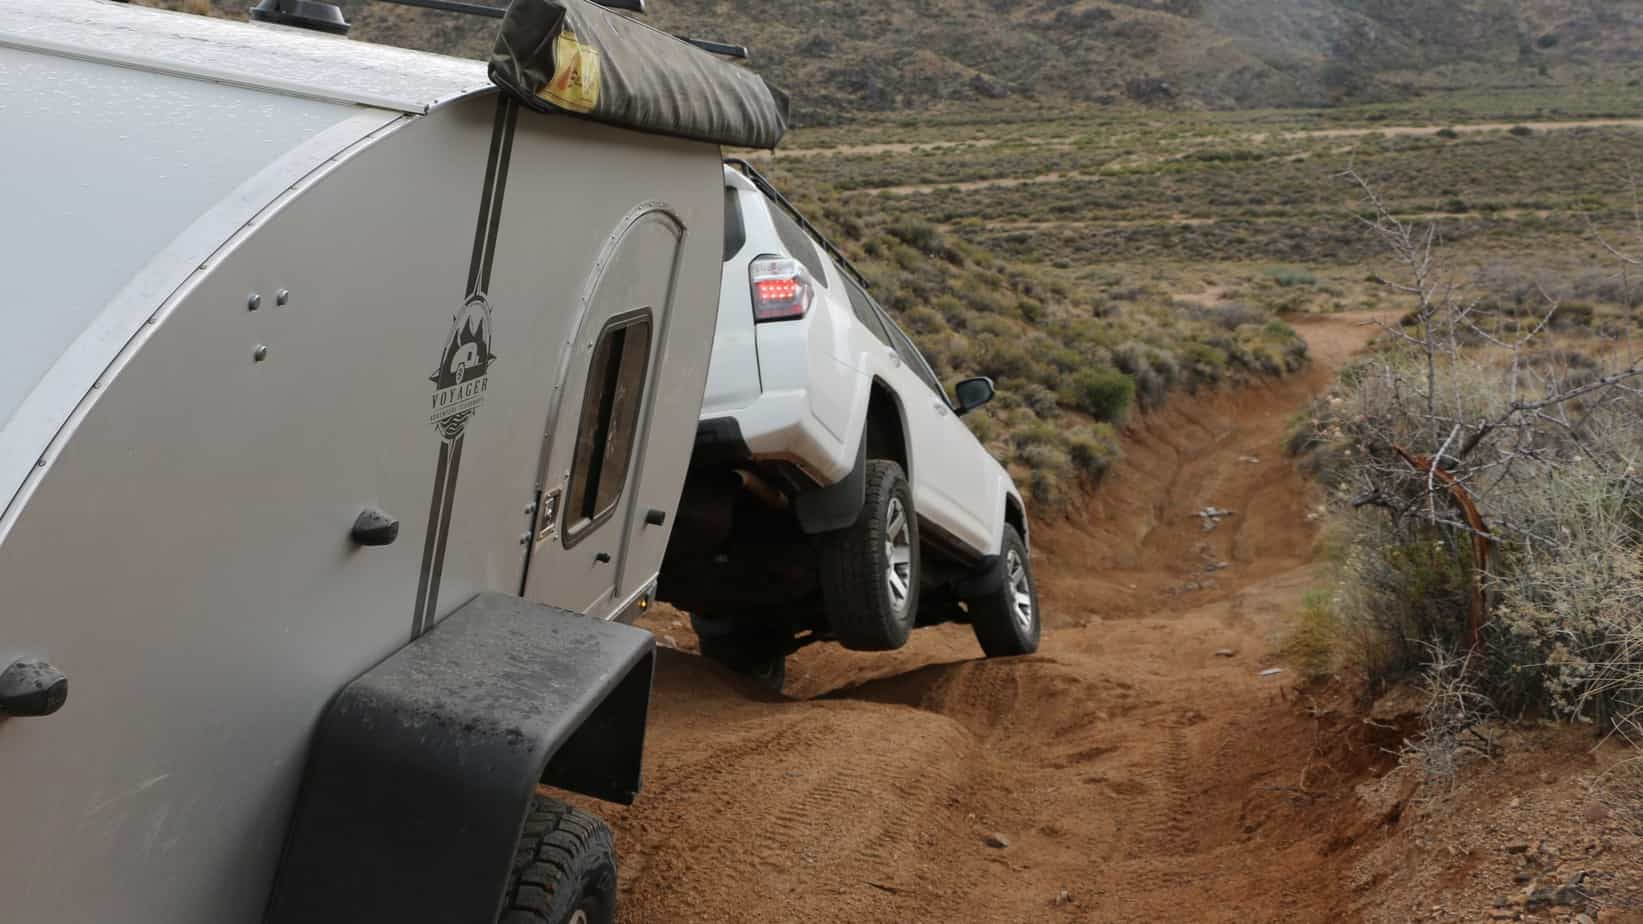 A Balancing Act: How to Calculate Your Trailer's Weight and Balance